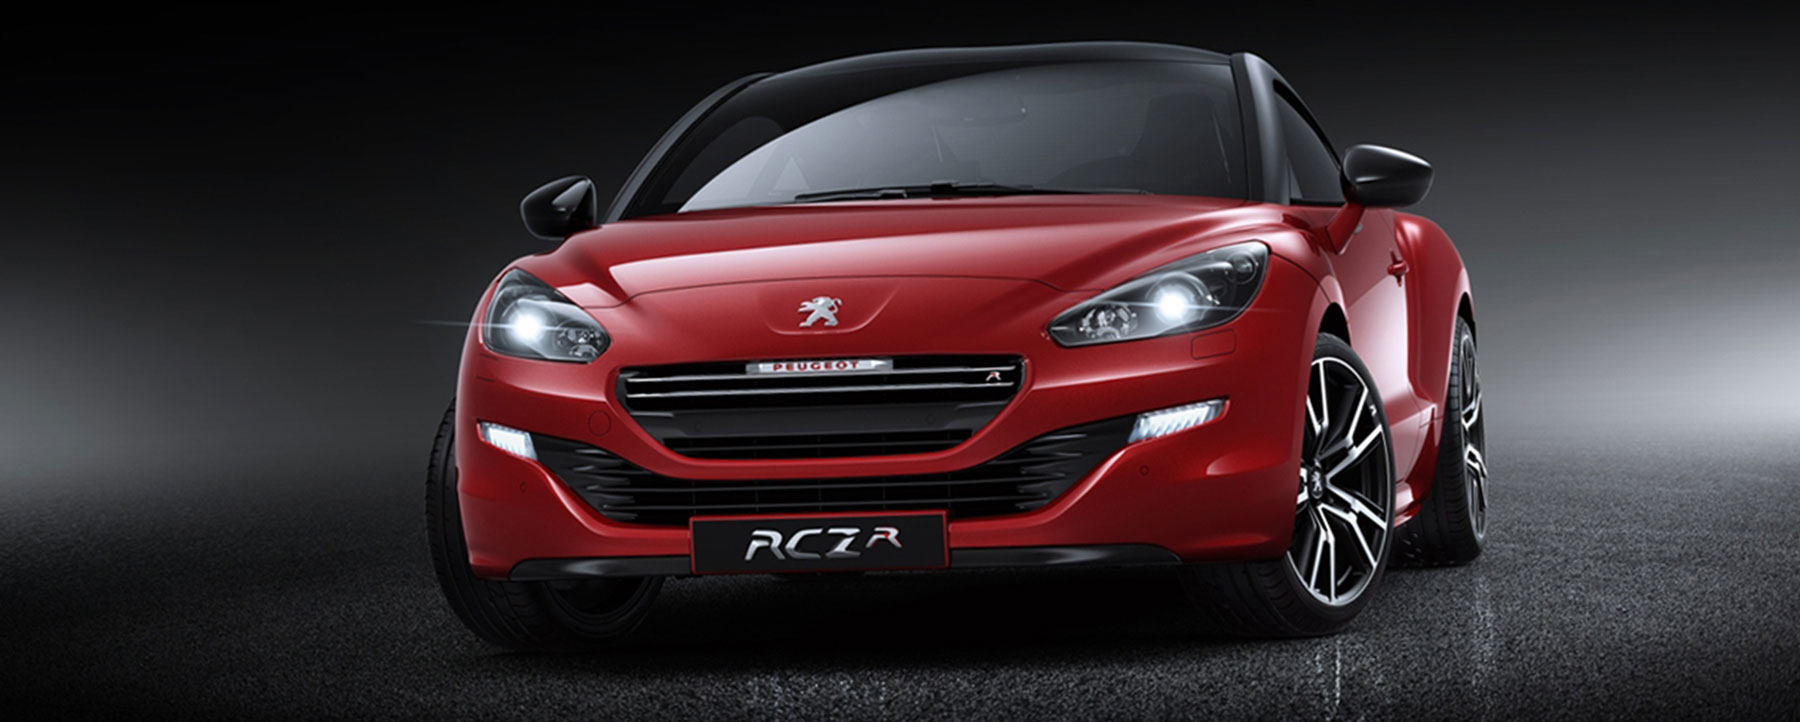 2458615811-RCZR1306STY001-RCZ-R-performance-and-efficiency-from-Peugeo